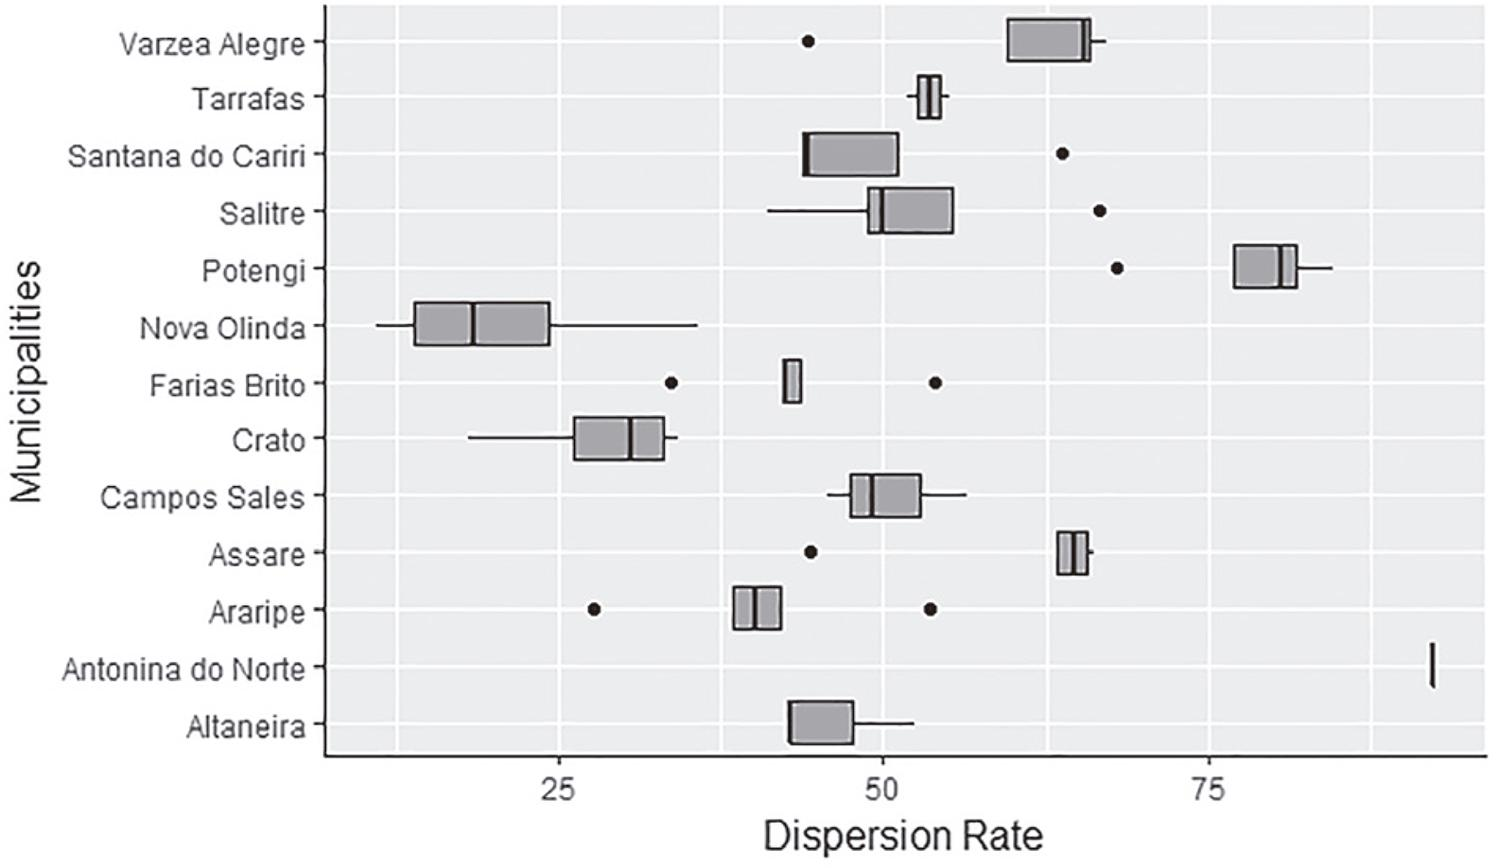 Triatomine dispersion rates for the 13 municipalities that form the 20th Regional Health Coordination (CRES) of the Ceara State, from 2009 to 2013. The boxes represent the variability of dispersion rates for each municipality, and the points represent outlier rates.